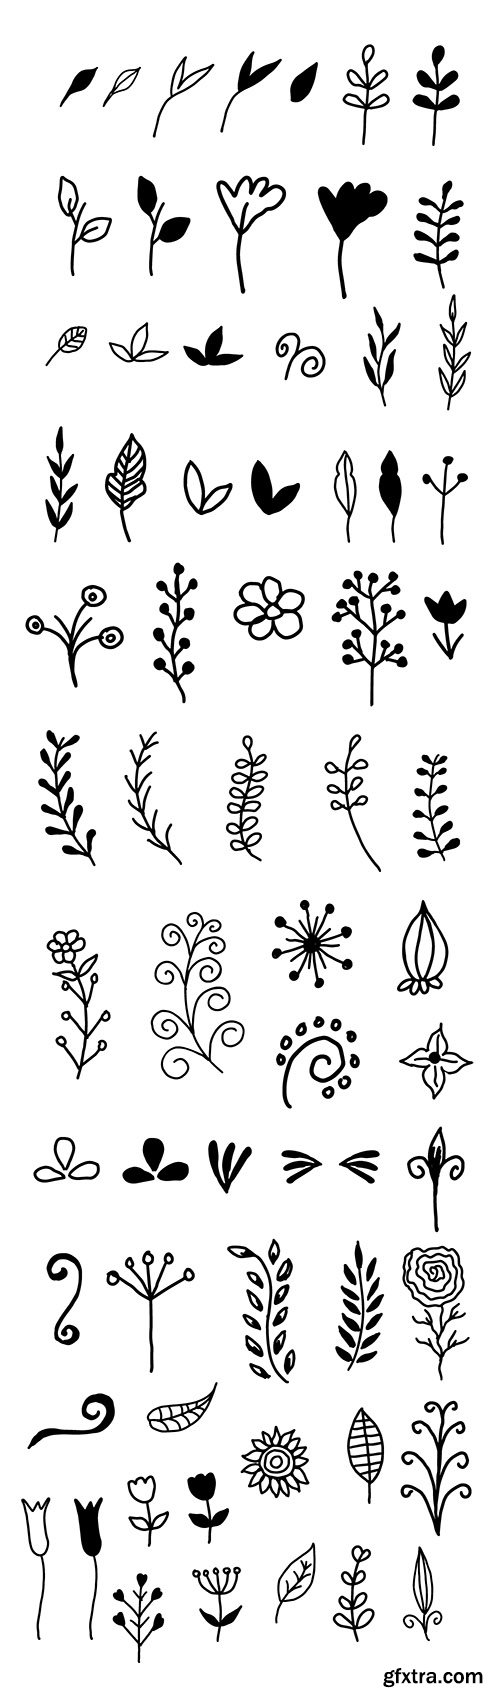 AI, EPS, PSD, PNG, SVG Vector Elements - 65 Hand-Drawn Decorative Floral Elements